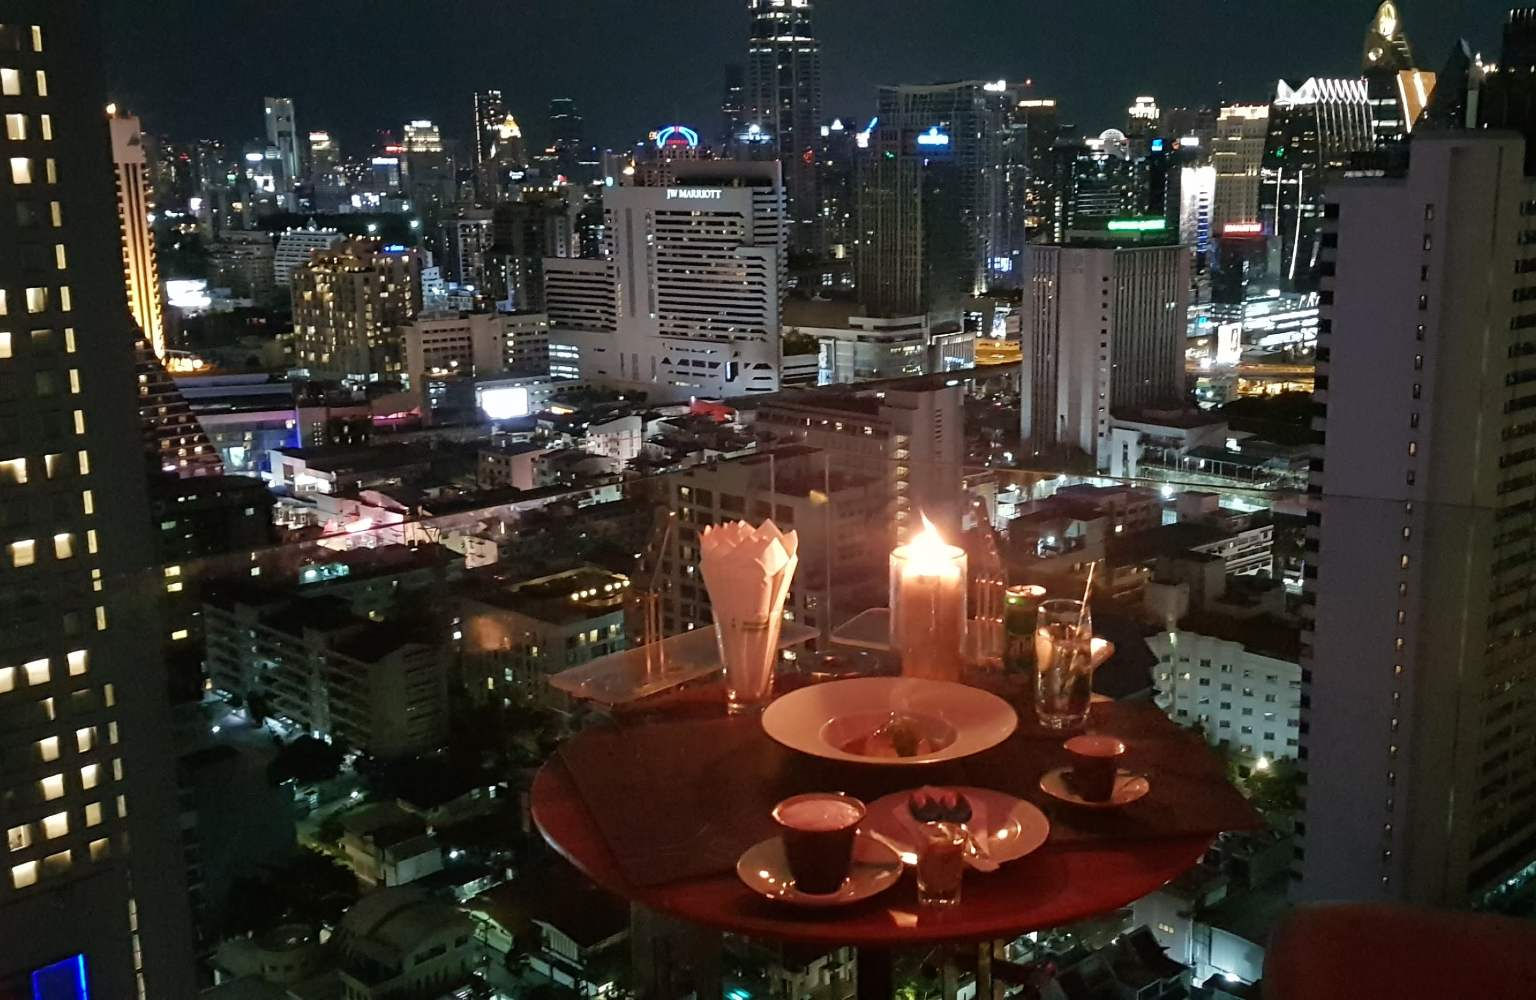 View of the skyline of Bangkok in the evening with a cup of coffee and dessert at Above Eleven Rooftop Bar